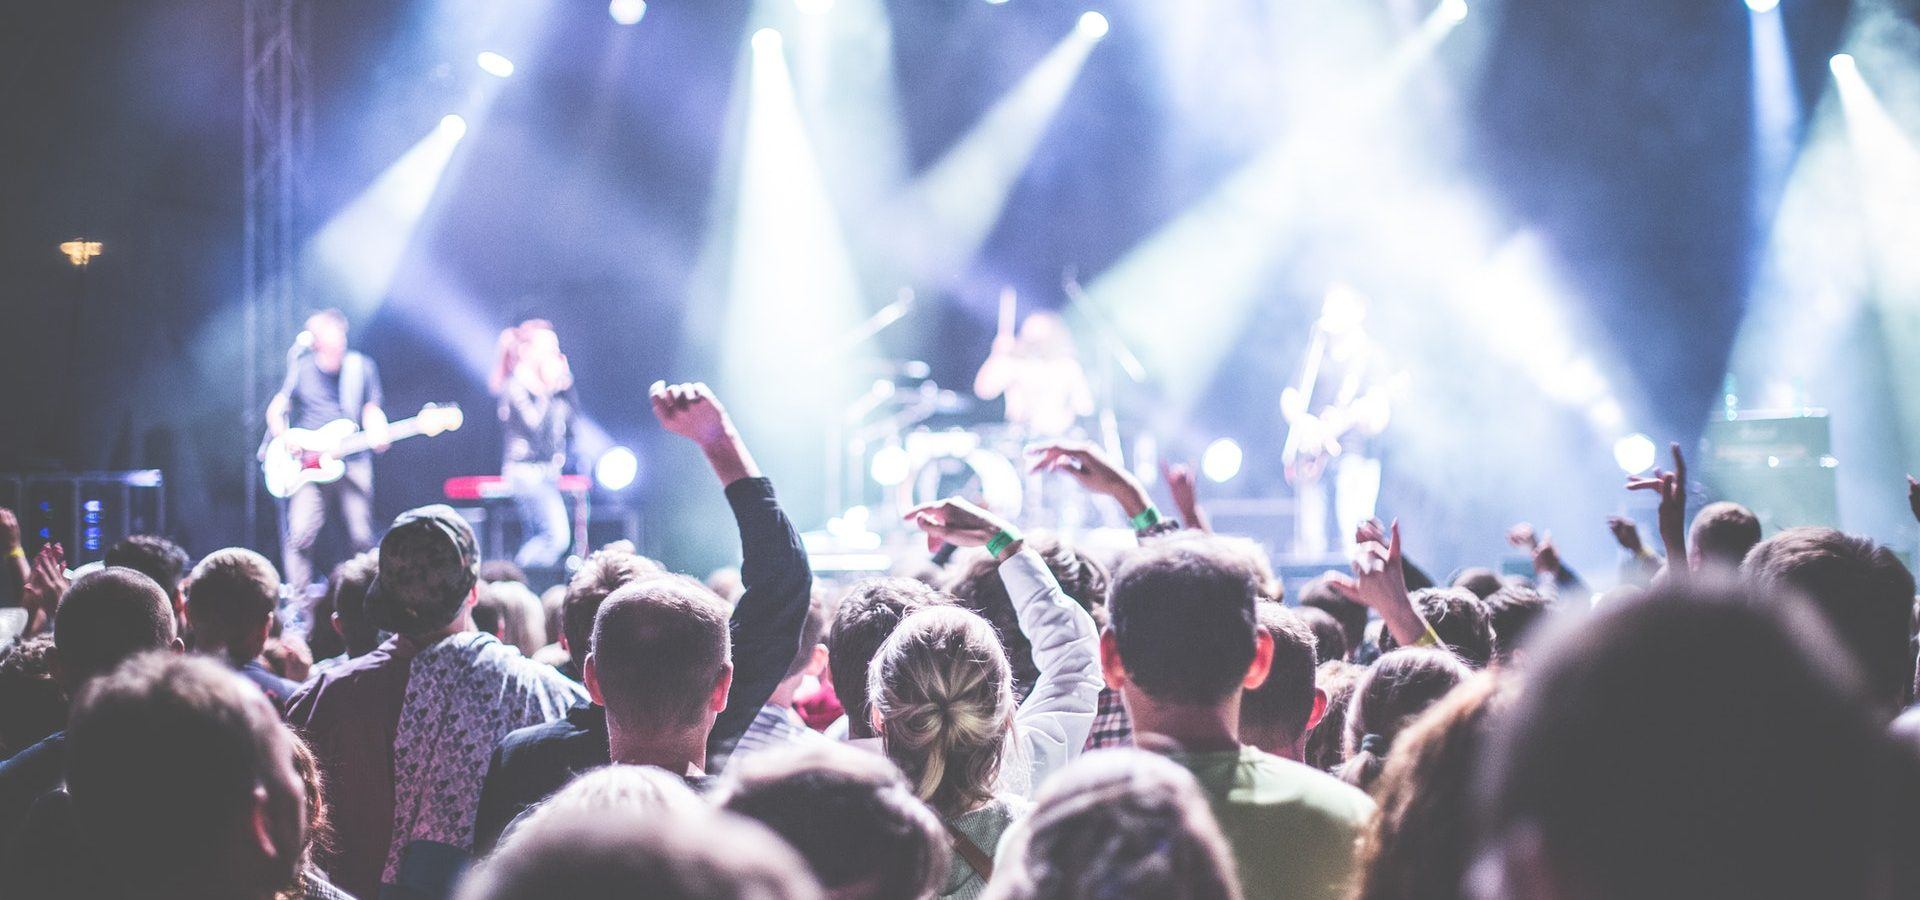 Audience watching a loud concert, at risk of noise induced hearing loss